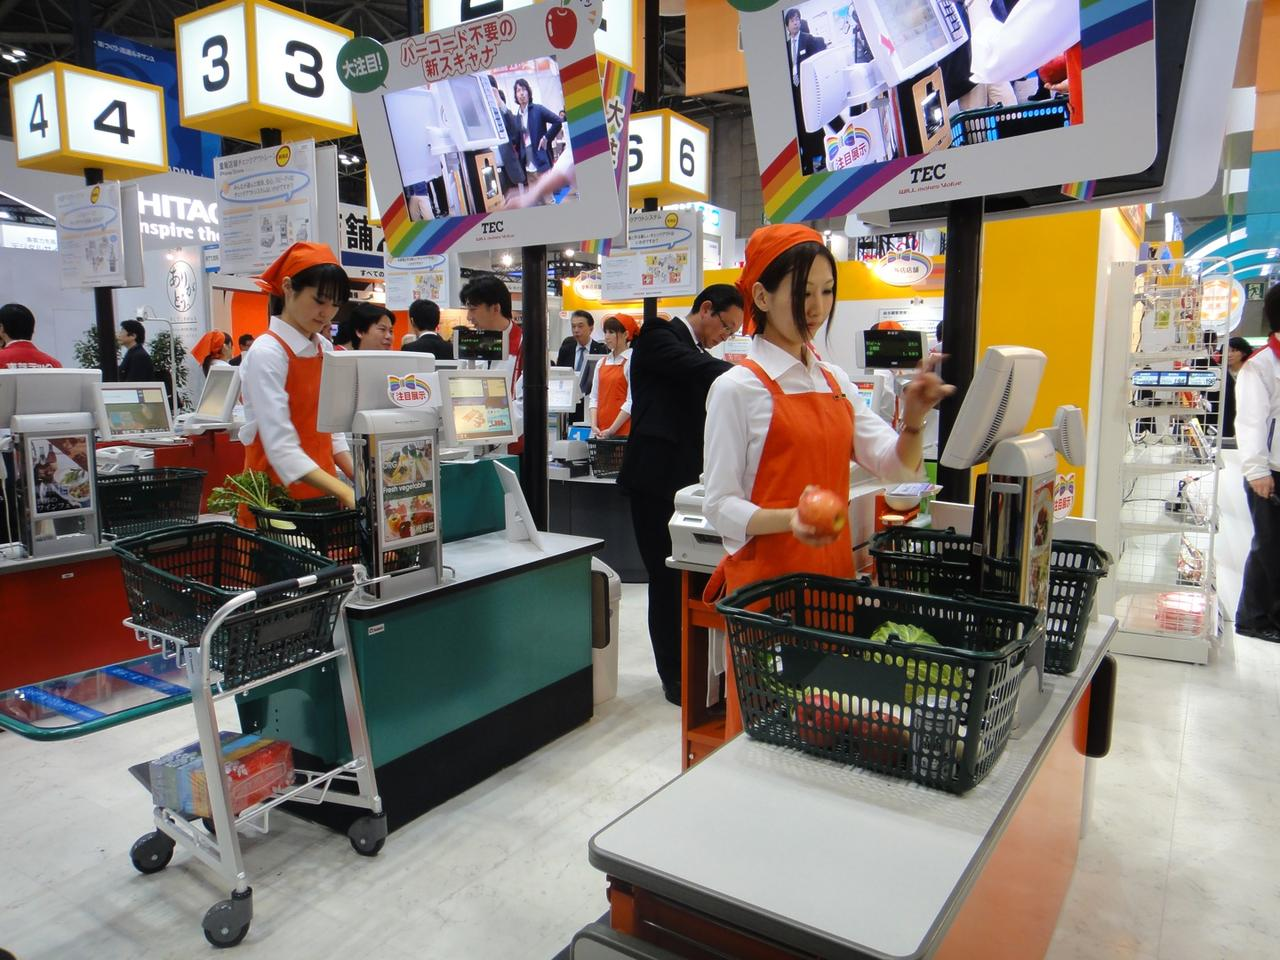 Toshiba Tec's new supermarket scanner is able to identify grocery items based on their appearance, not barcodes (Photo: DigInfo)